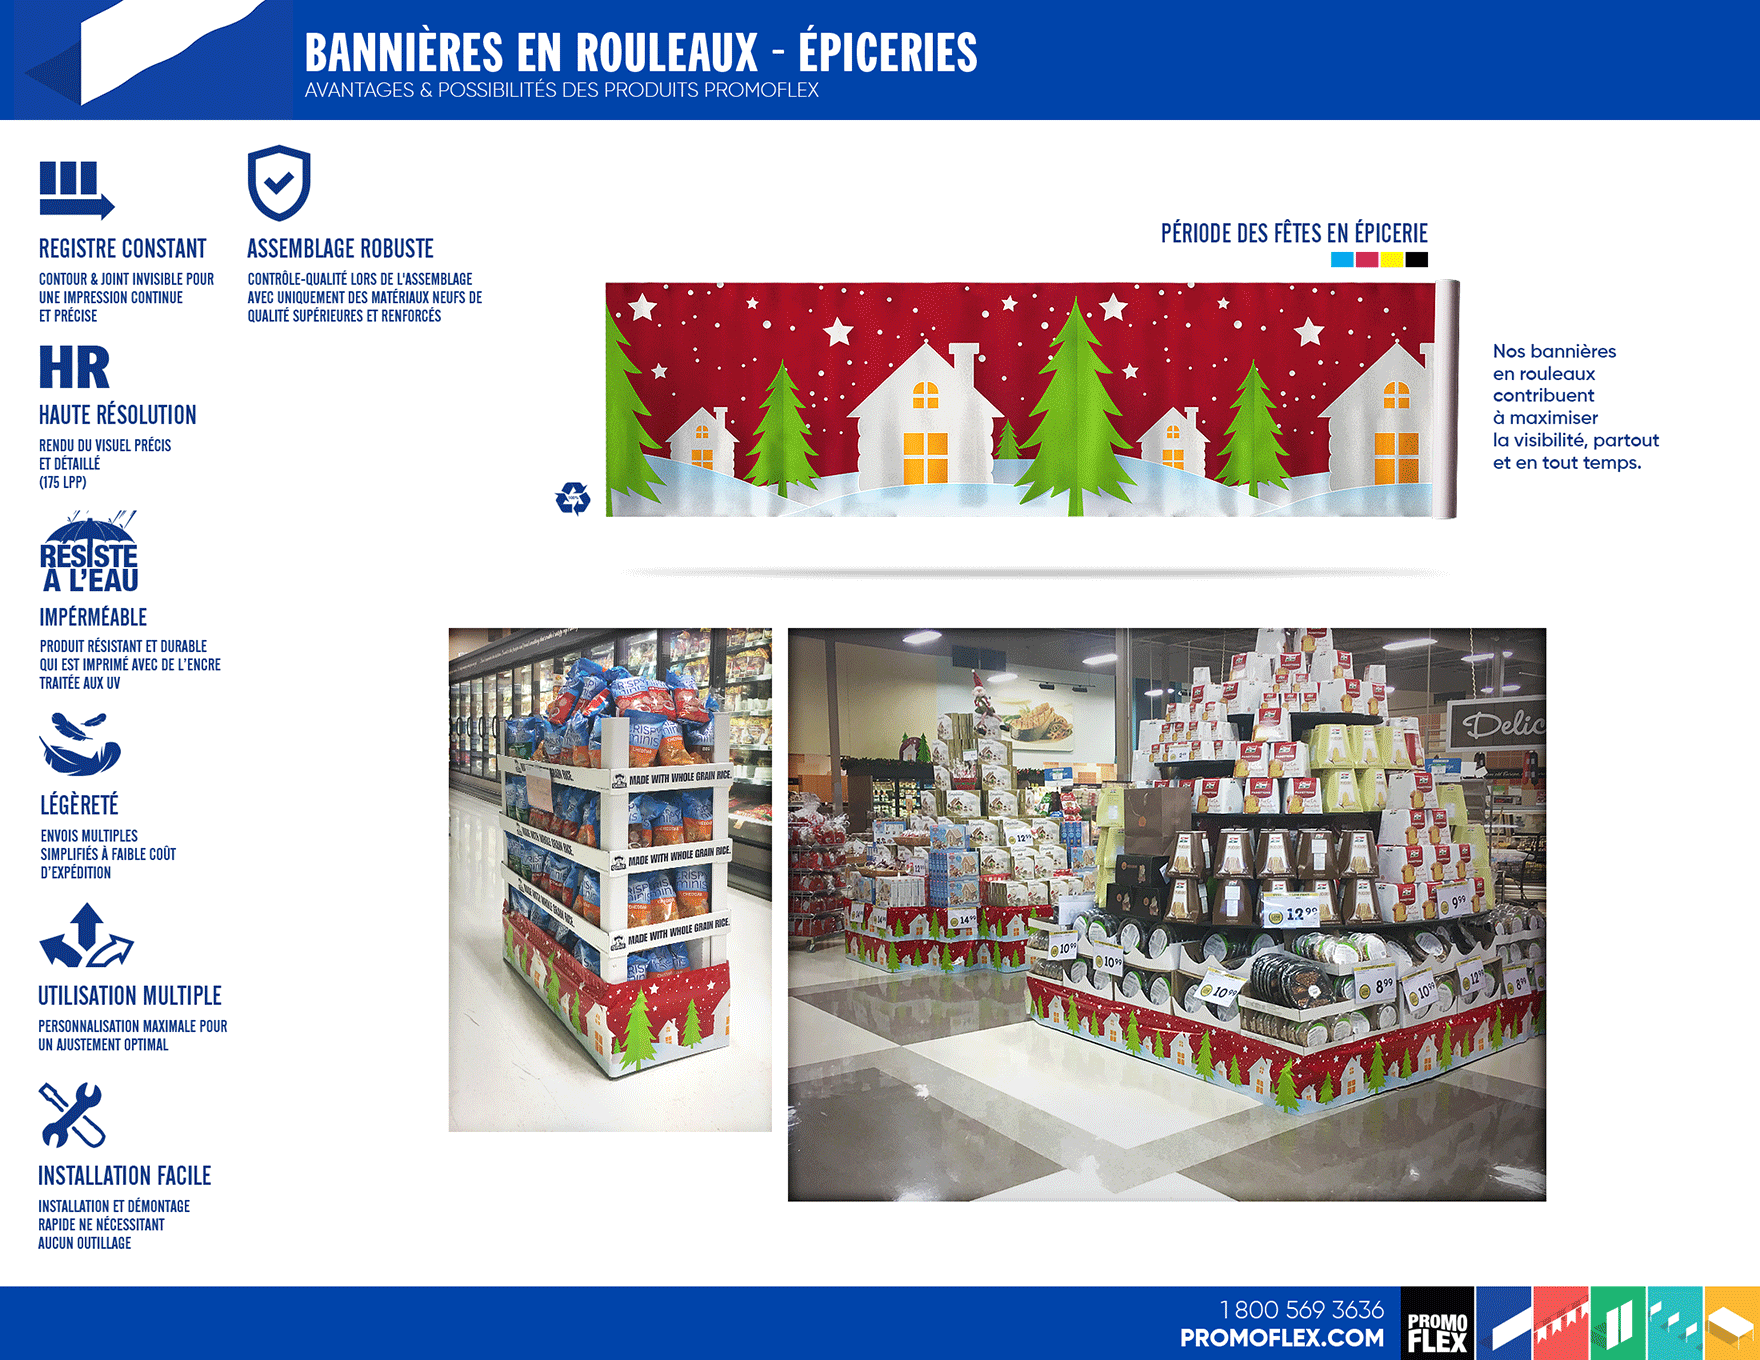 roll-banners-grocery-stores-fr-11.png (545 KB)